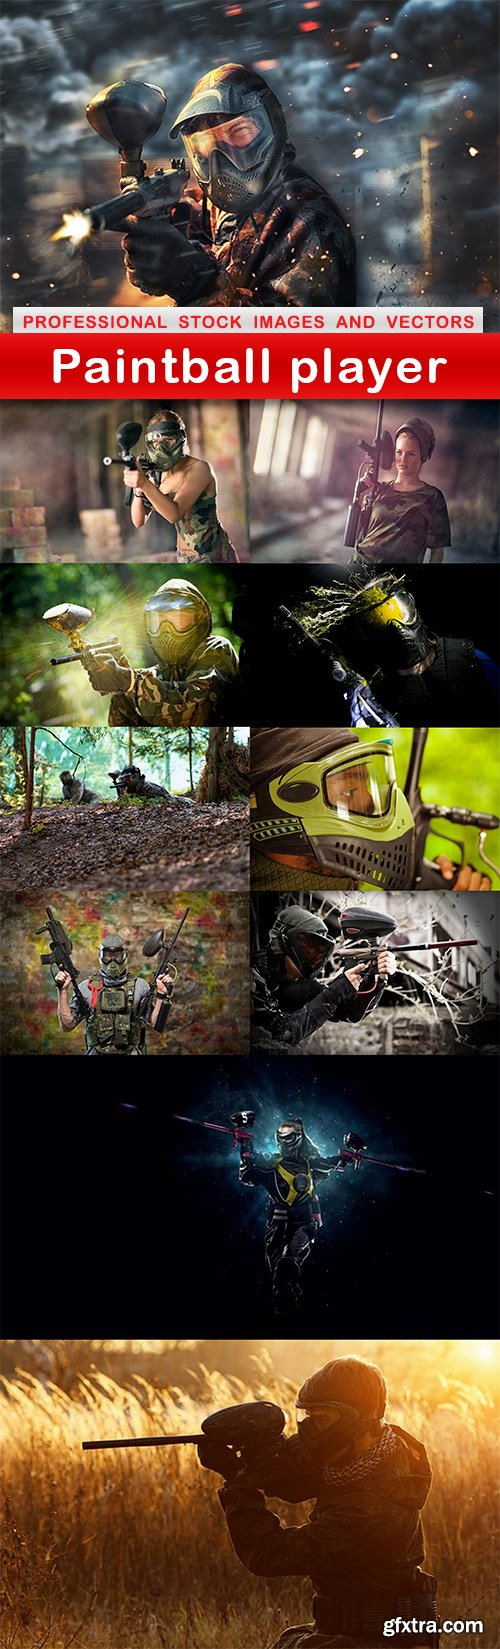 Paintball player - 11 UHQ JPEG